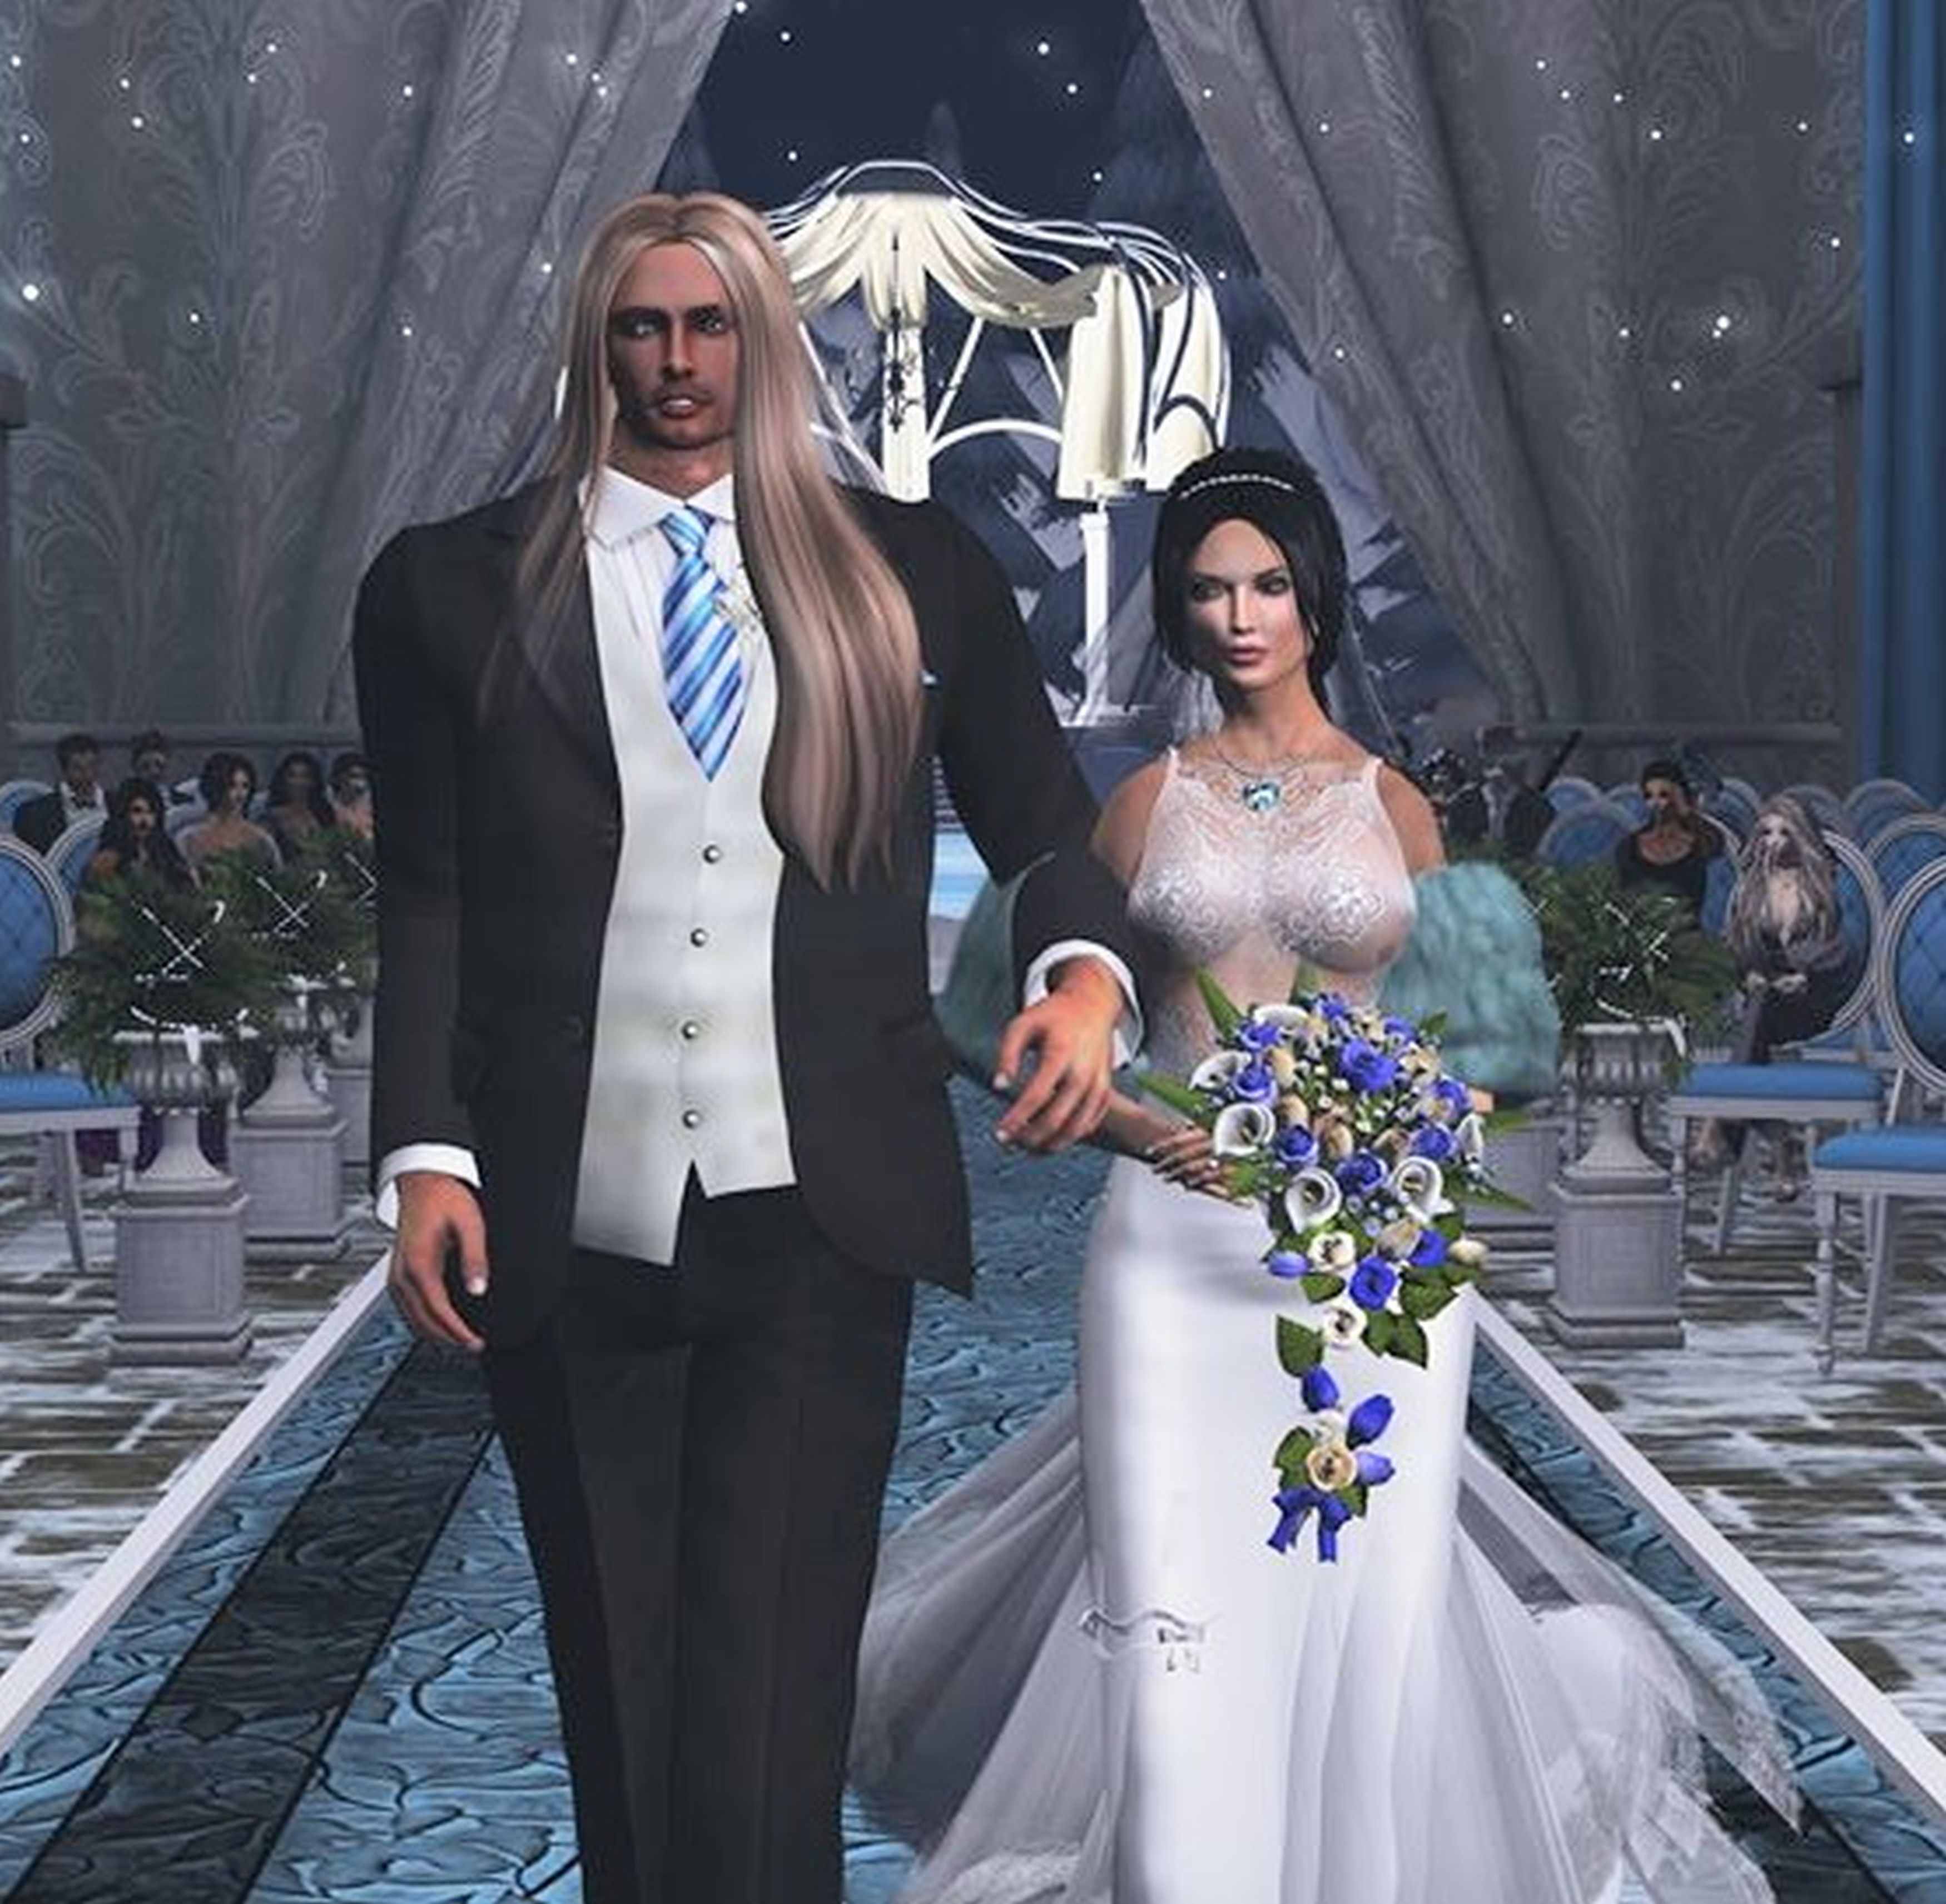 Gaming couple marry